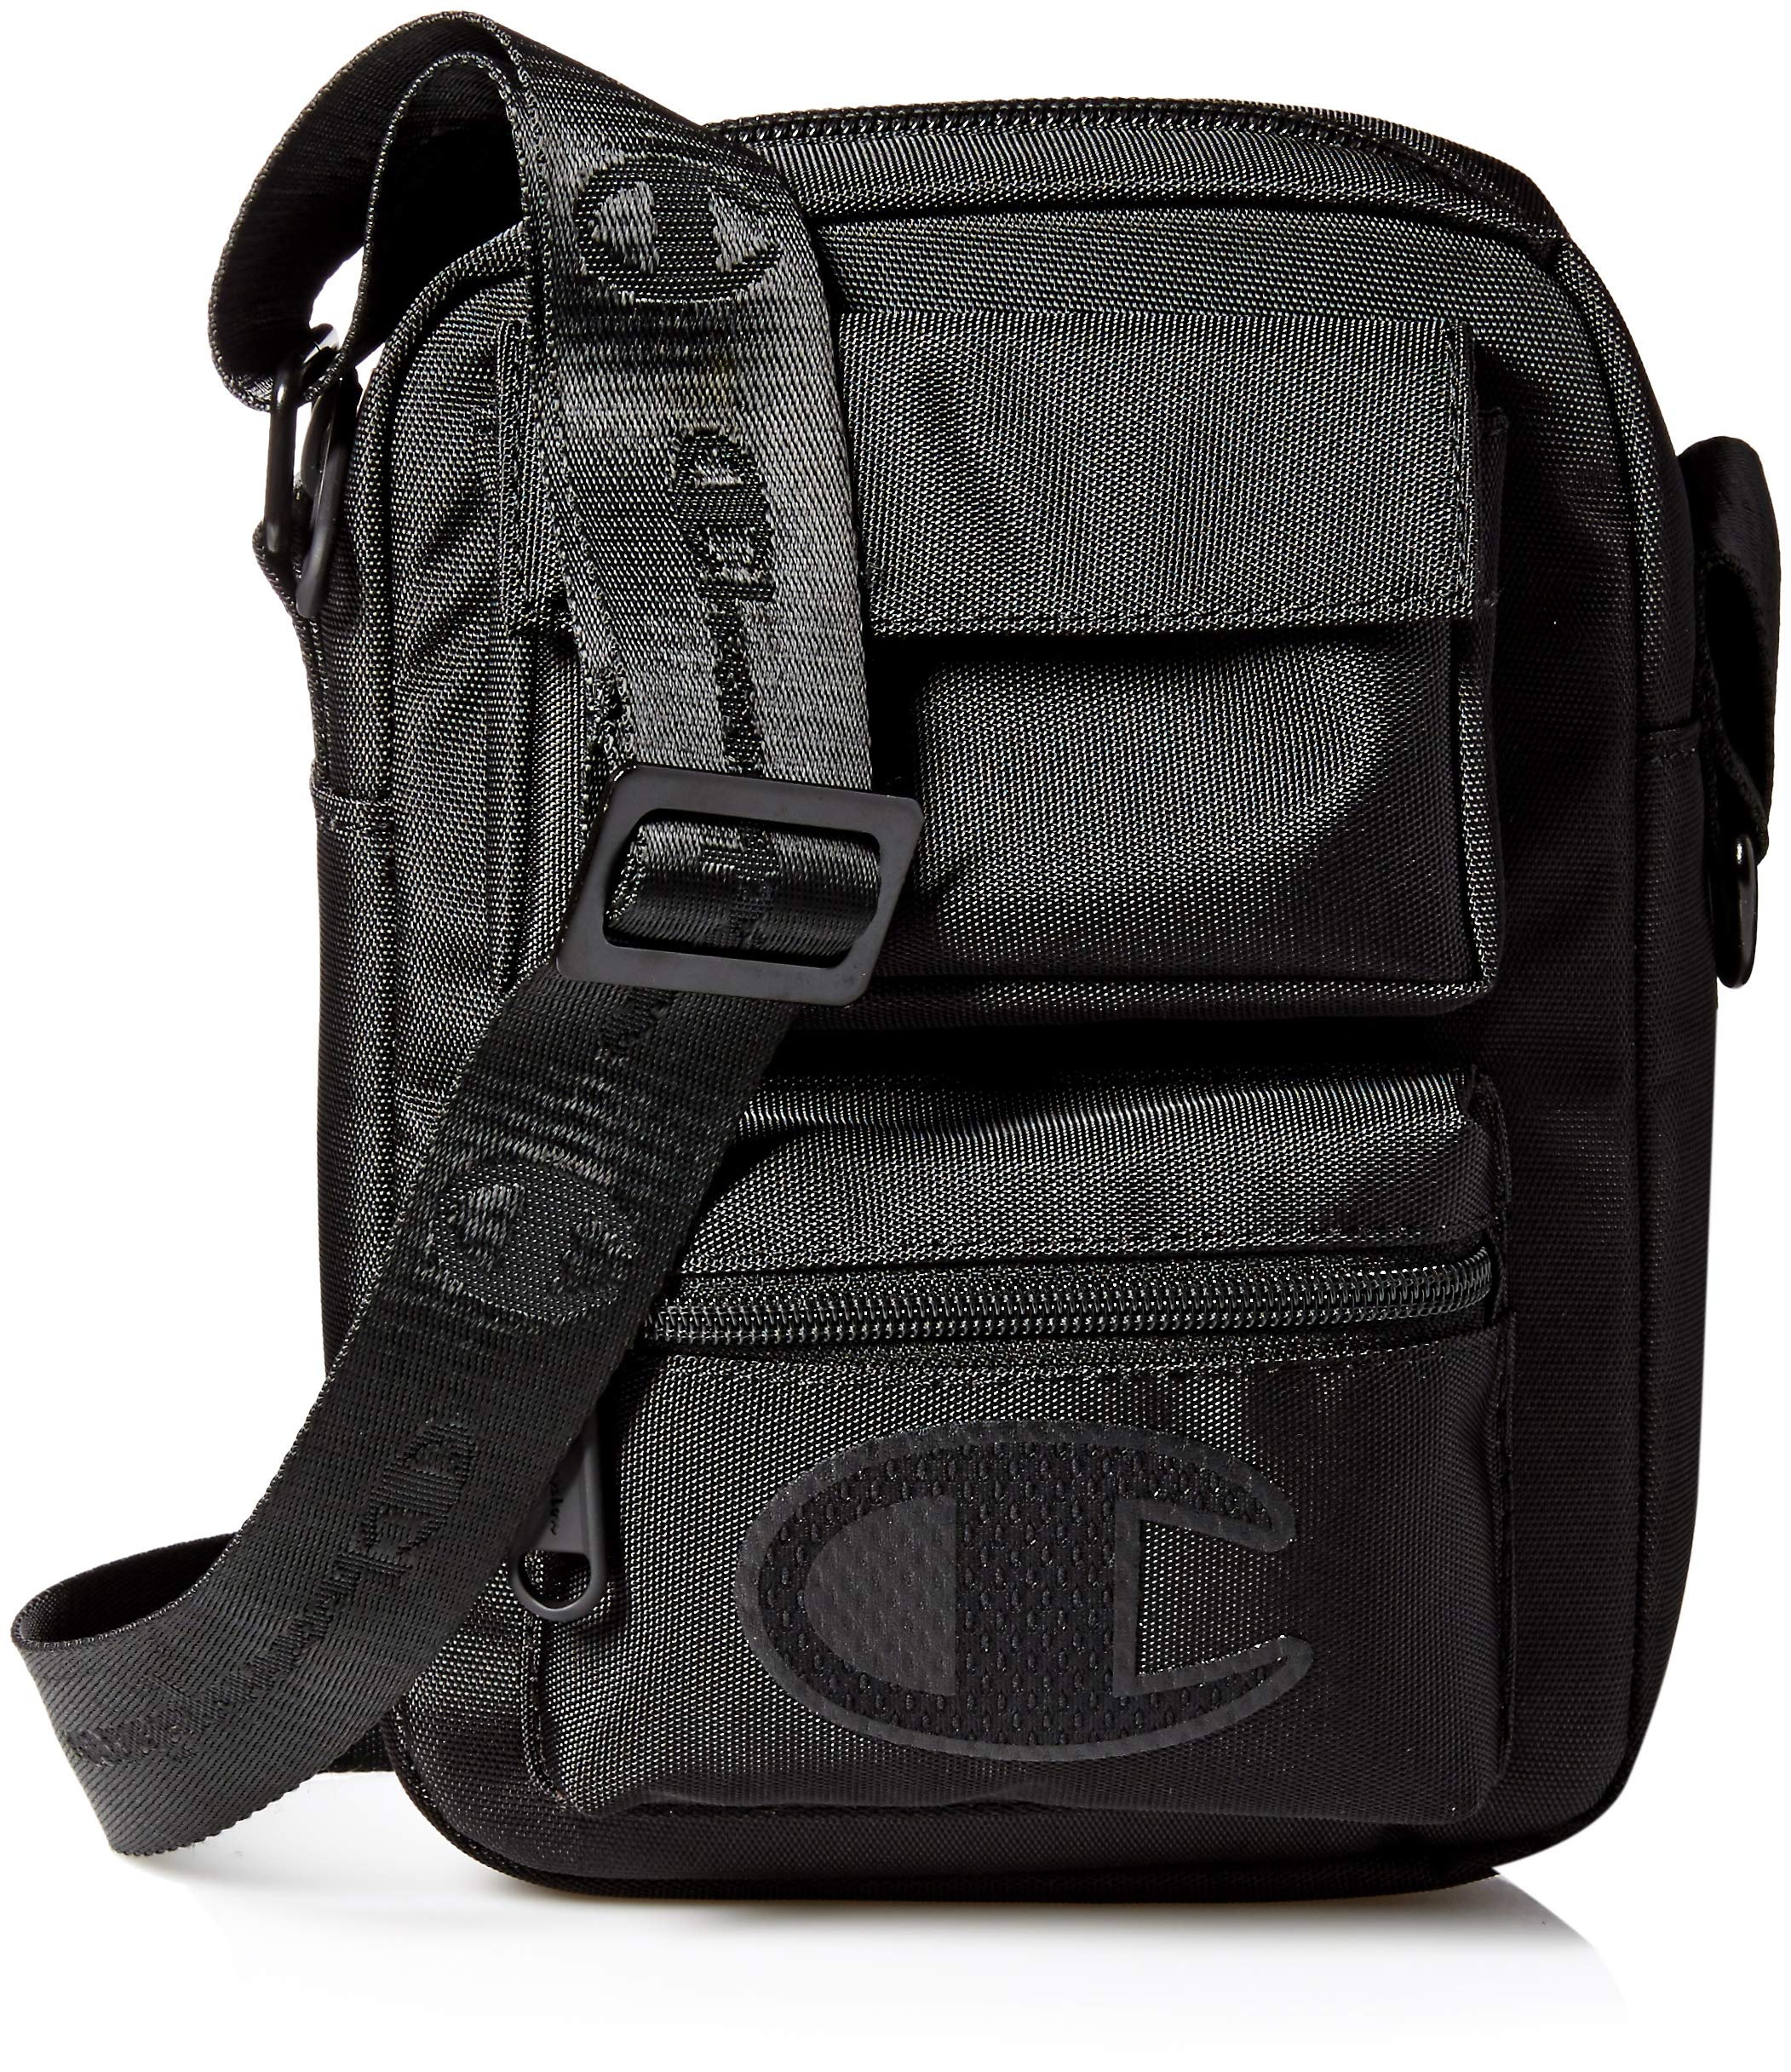 Champion Unisex-Adult's Stealth Cross Body Bag, black, One Size